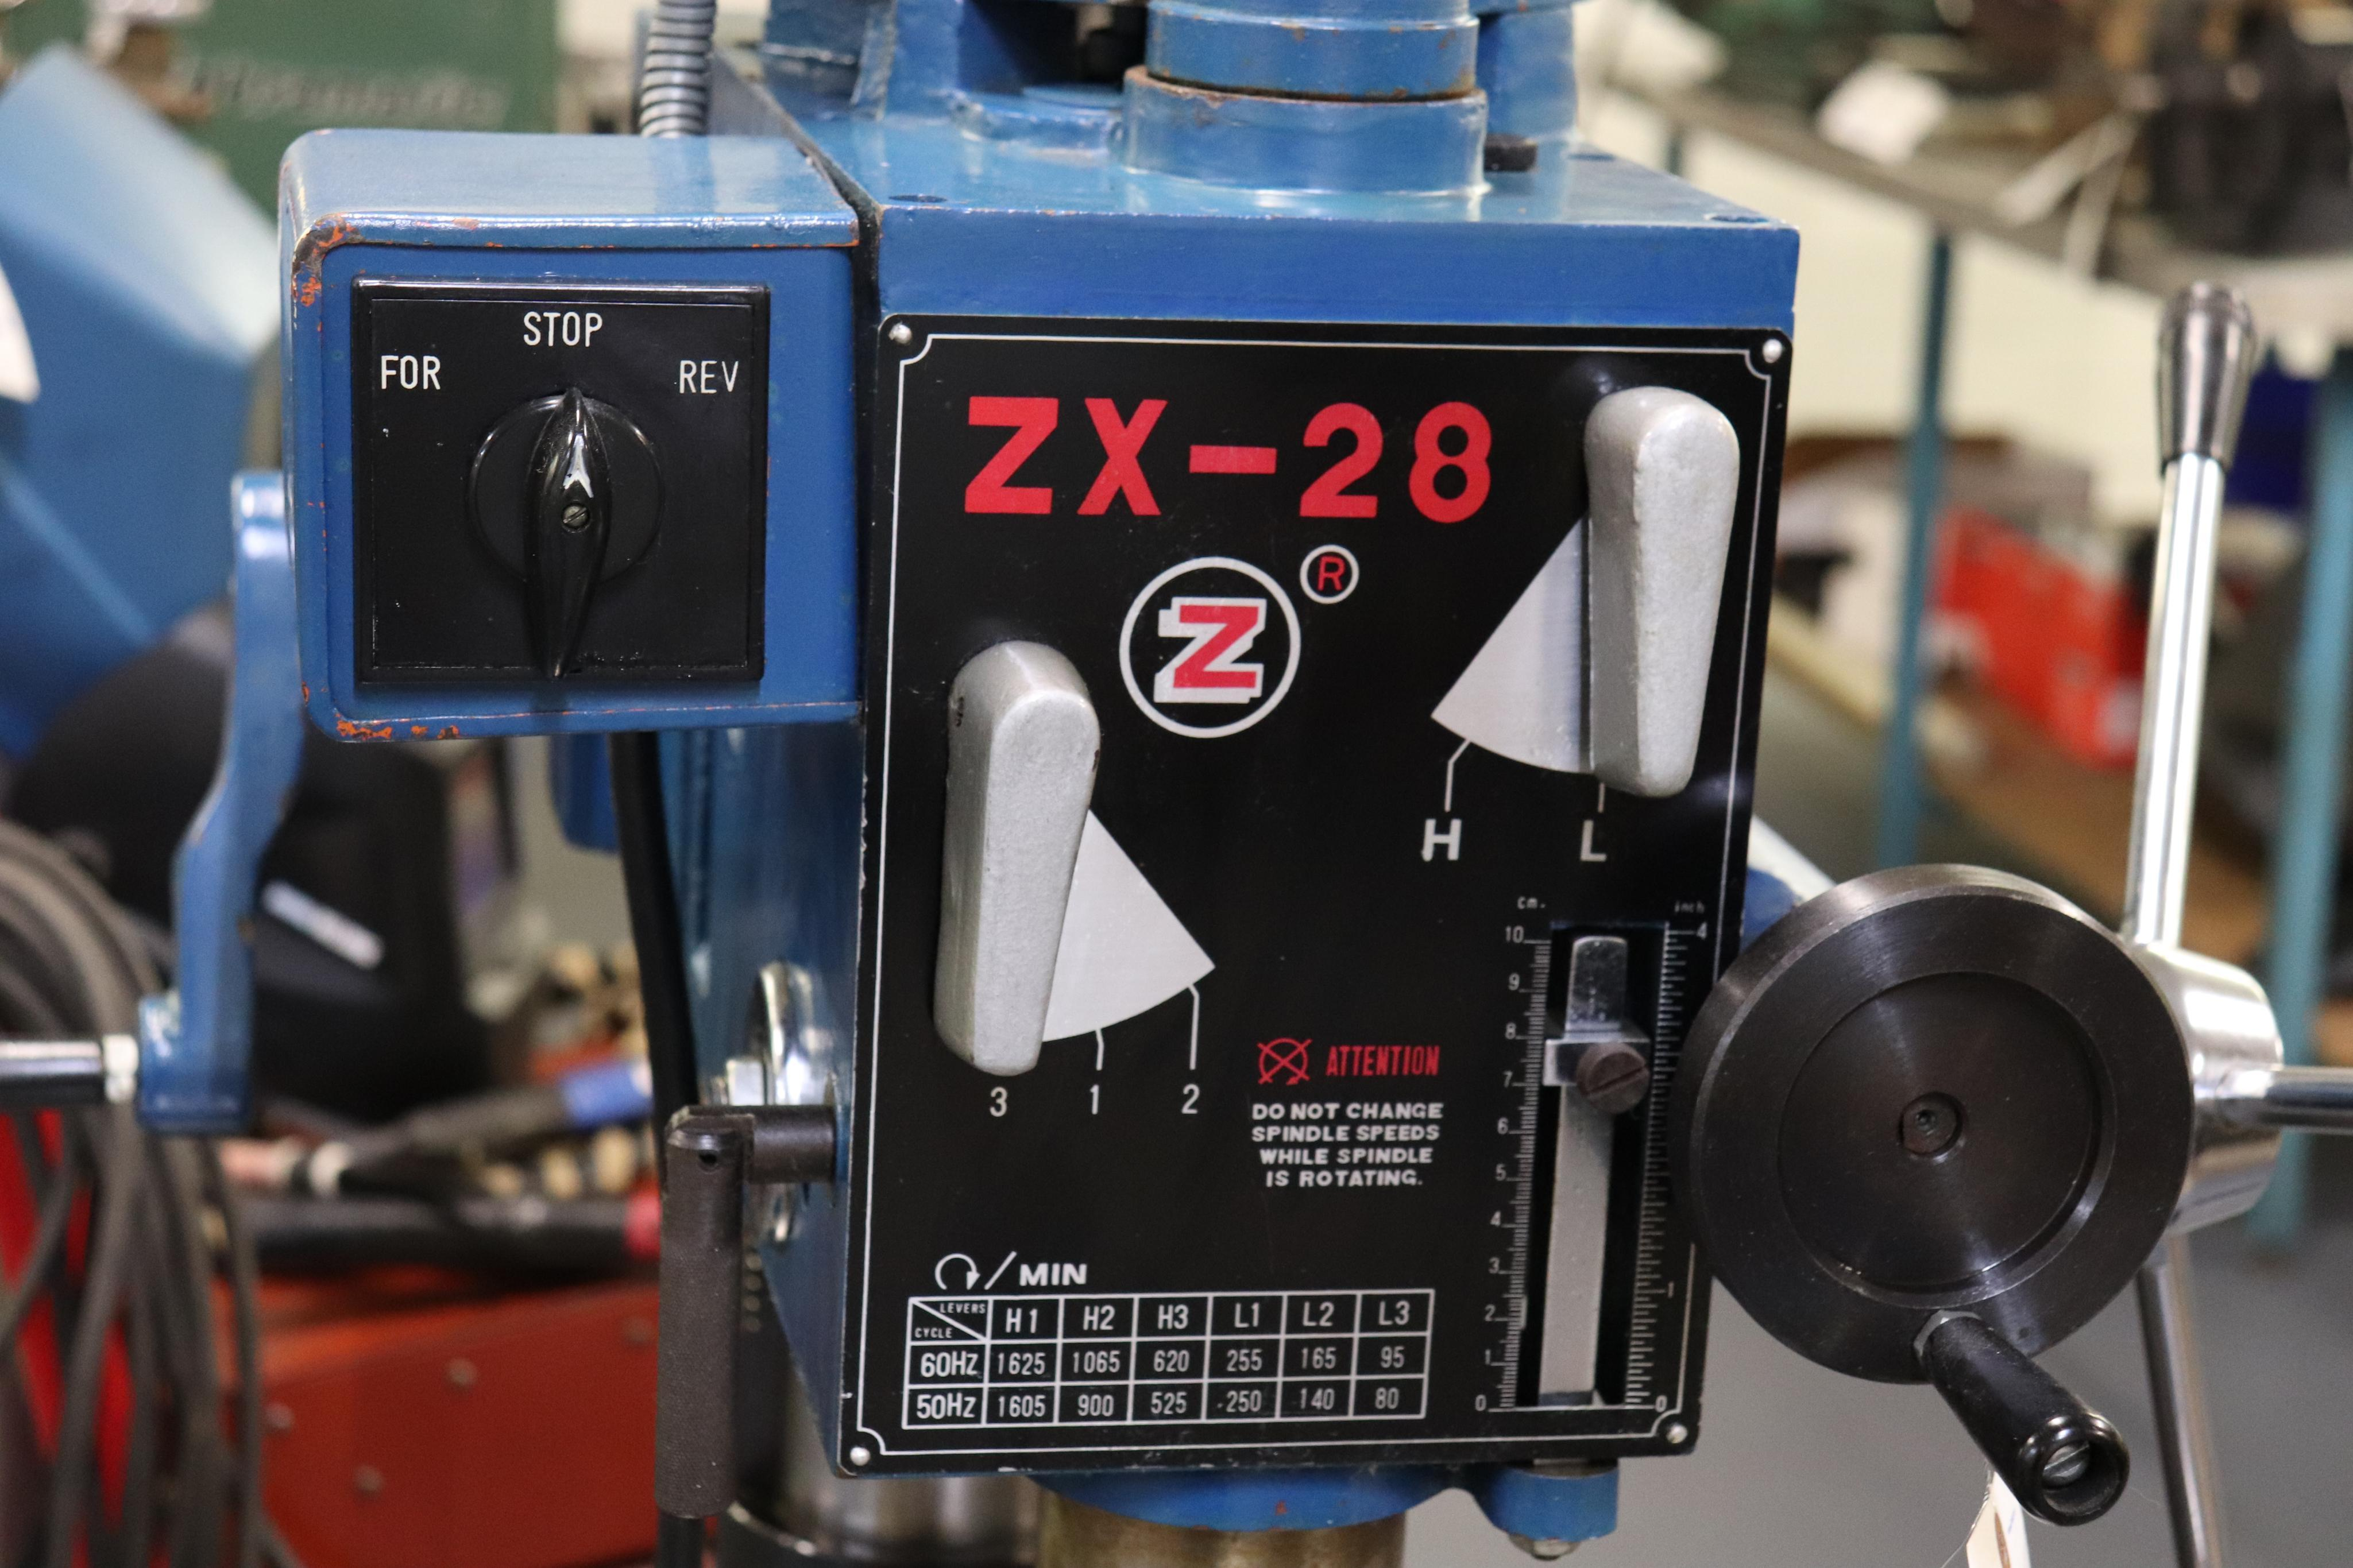 Motor-Car Gear Factory ZX-28 vertical milling machine - Image 4 of 7